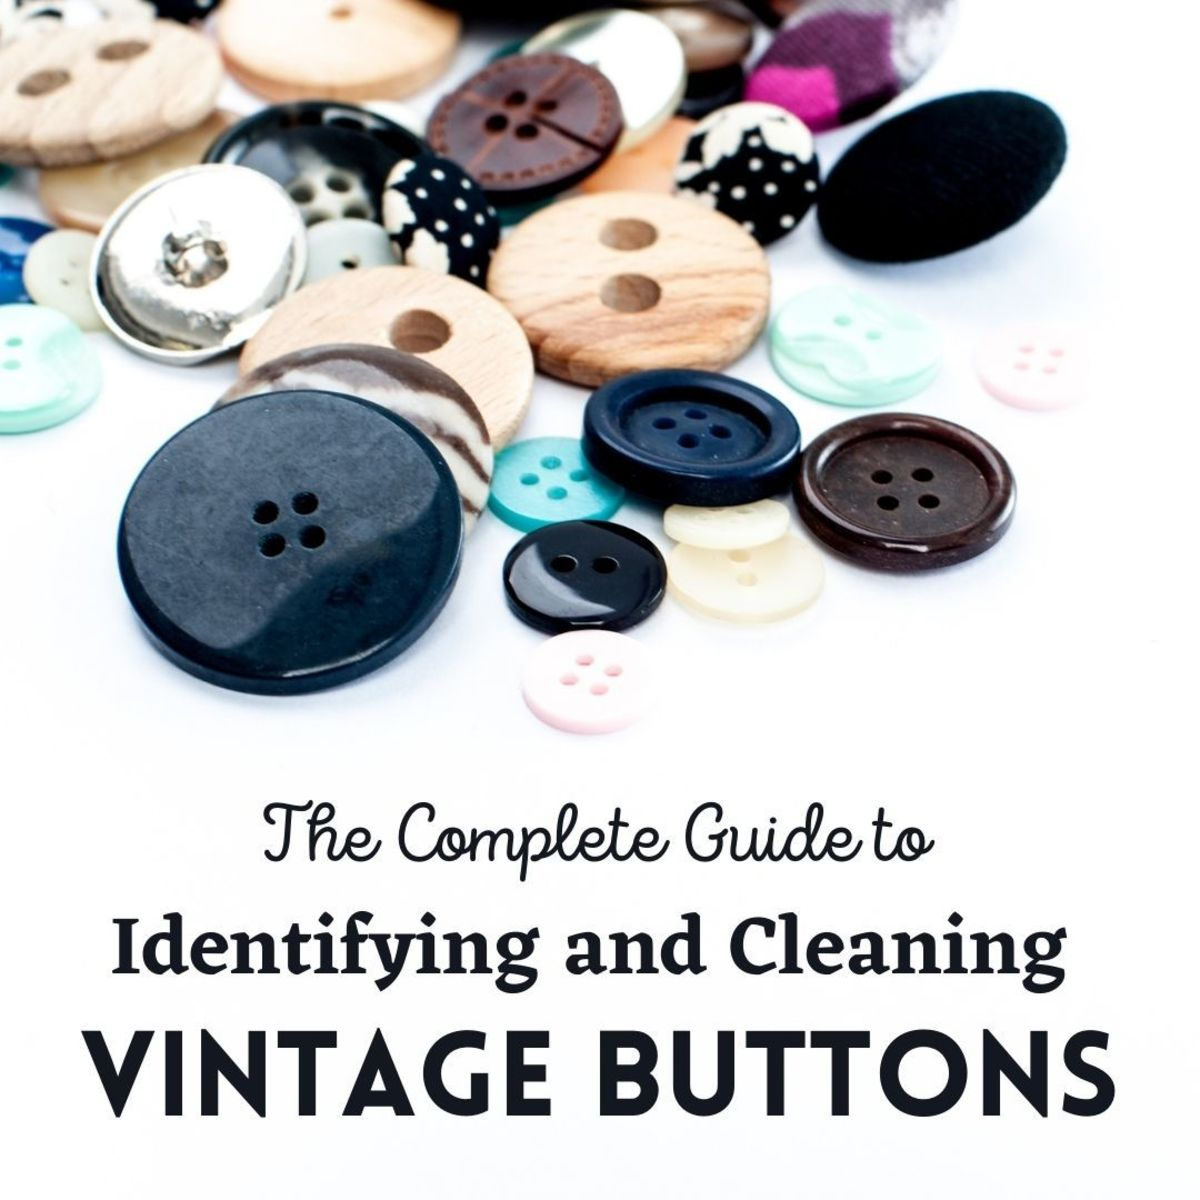 How to identify and clean vintage buttons